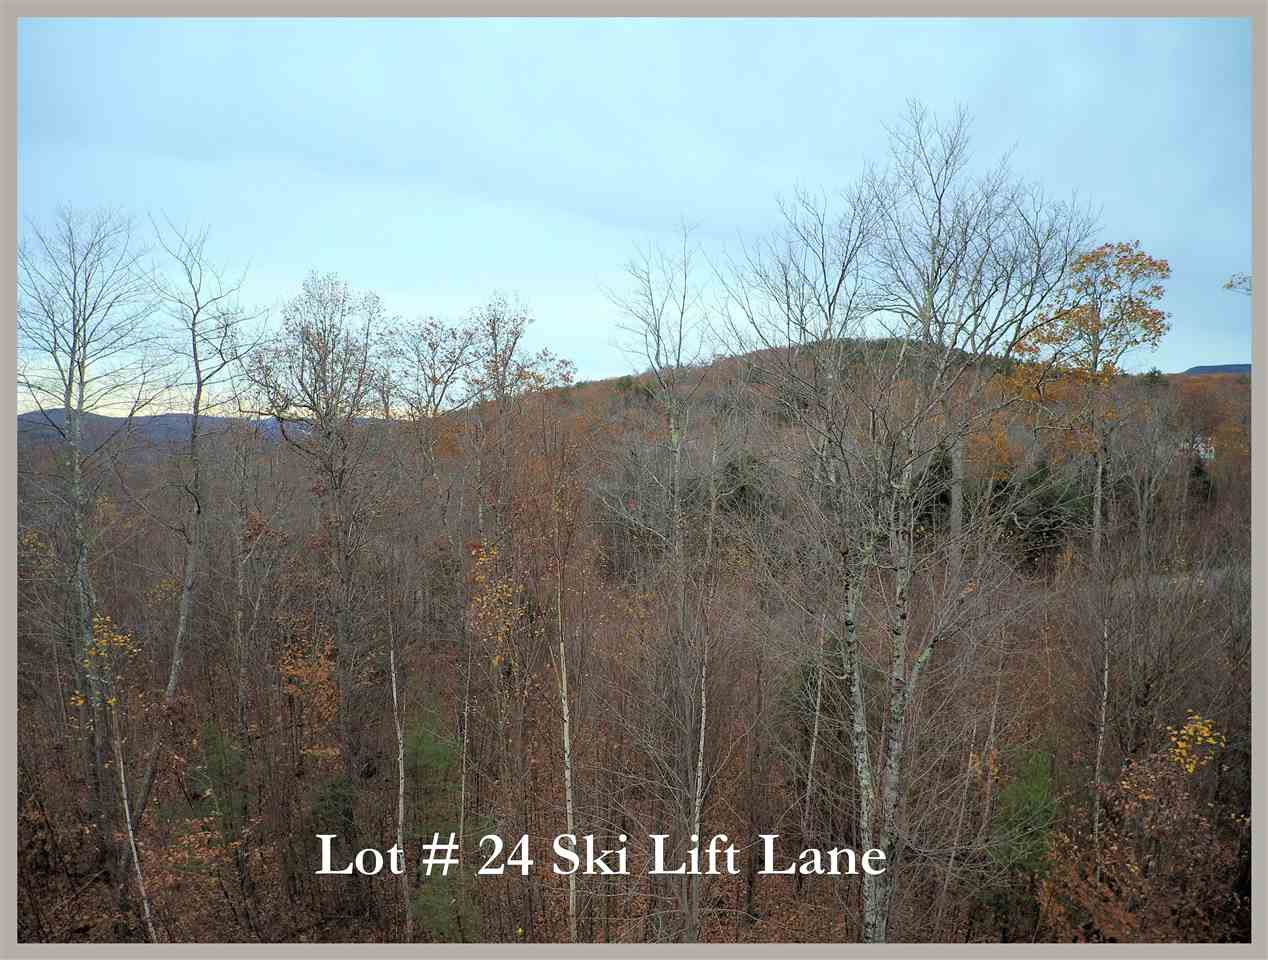 MLS 4698925: NA Ski Lift, Plymouth NH